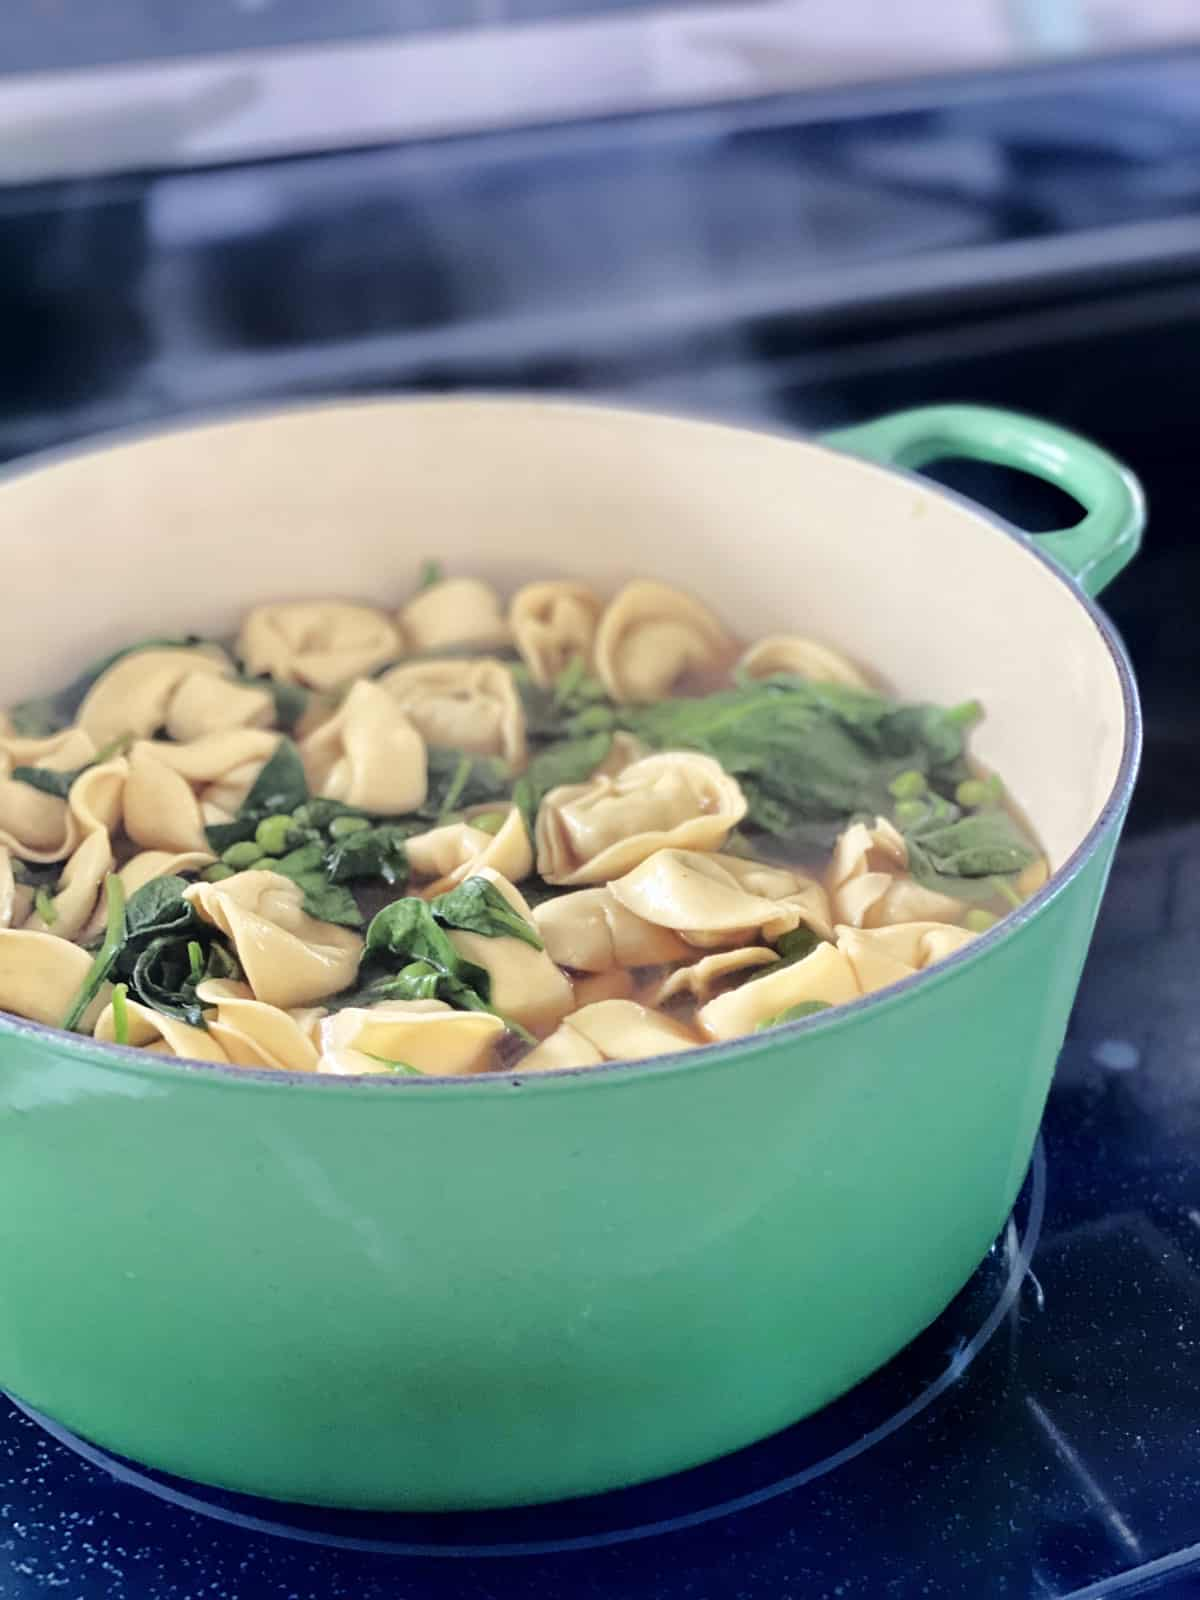 Green pot on a stove top with tortelini, spinach, and peas simmering with steam raised.